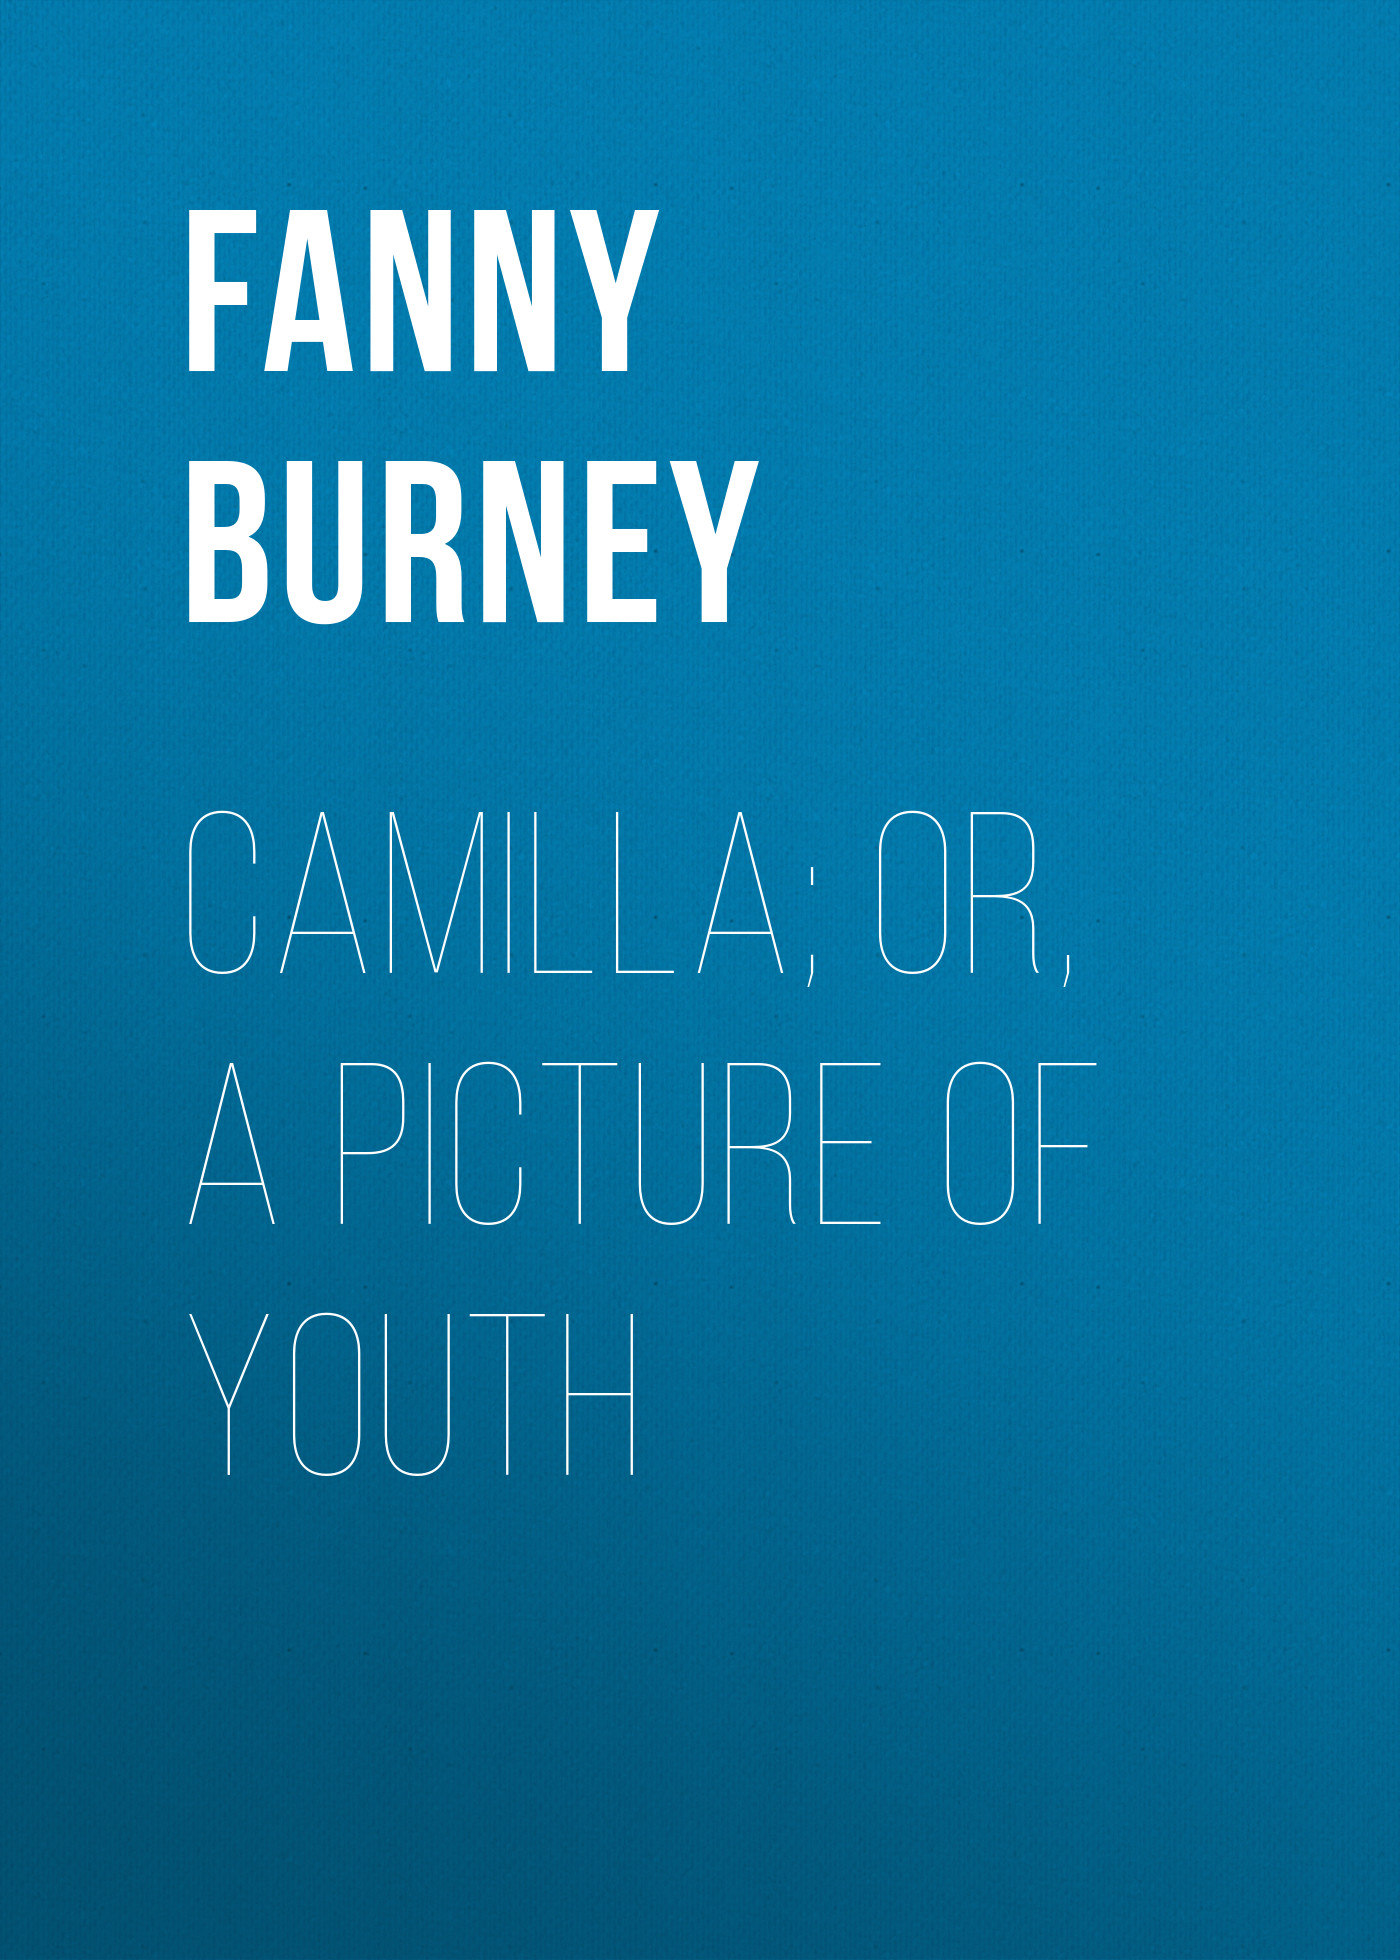 Burney Fanny Camilla; or, A Picture of Youth burney fanny the wanderer or female difficulties volume 5 of 5